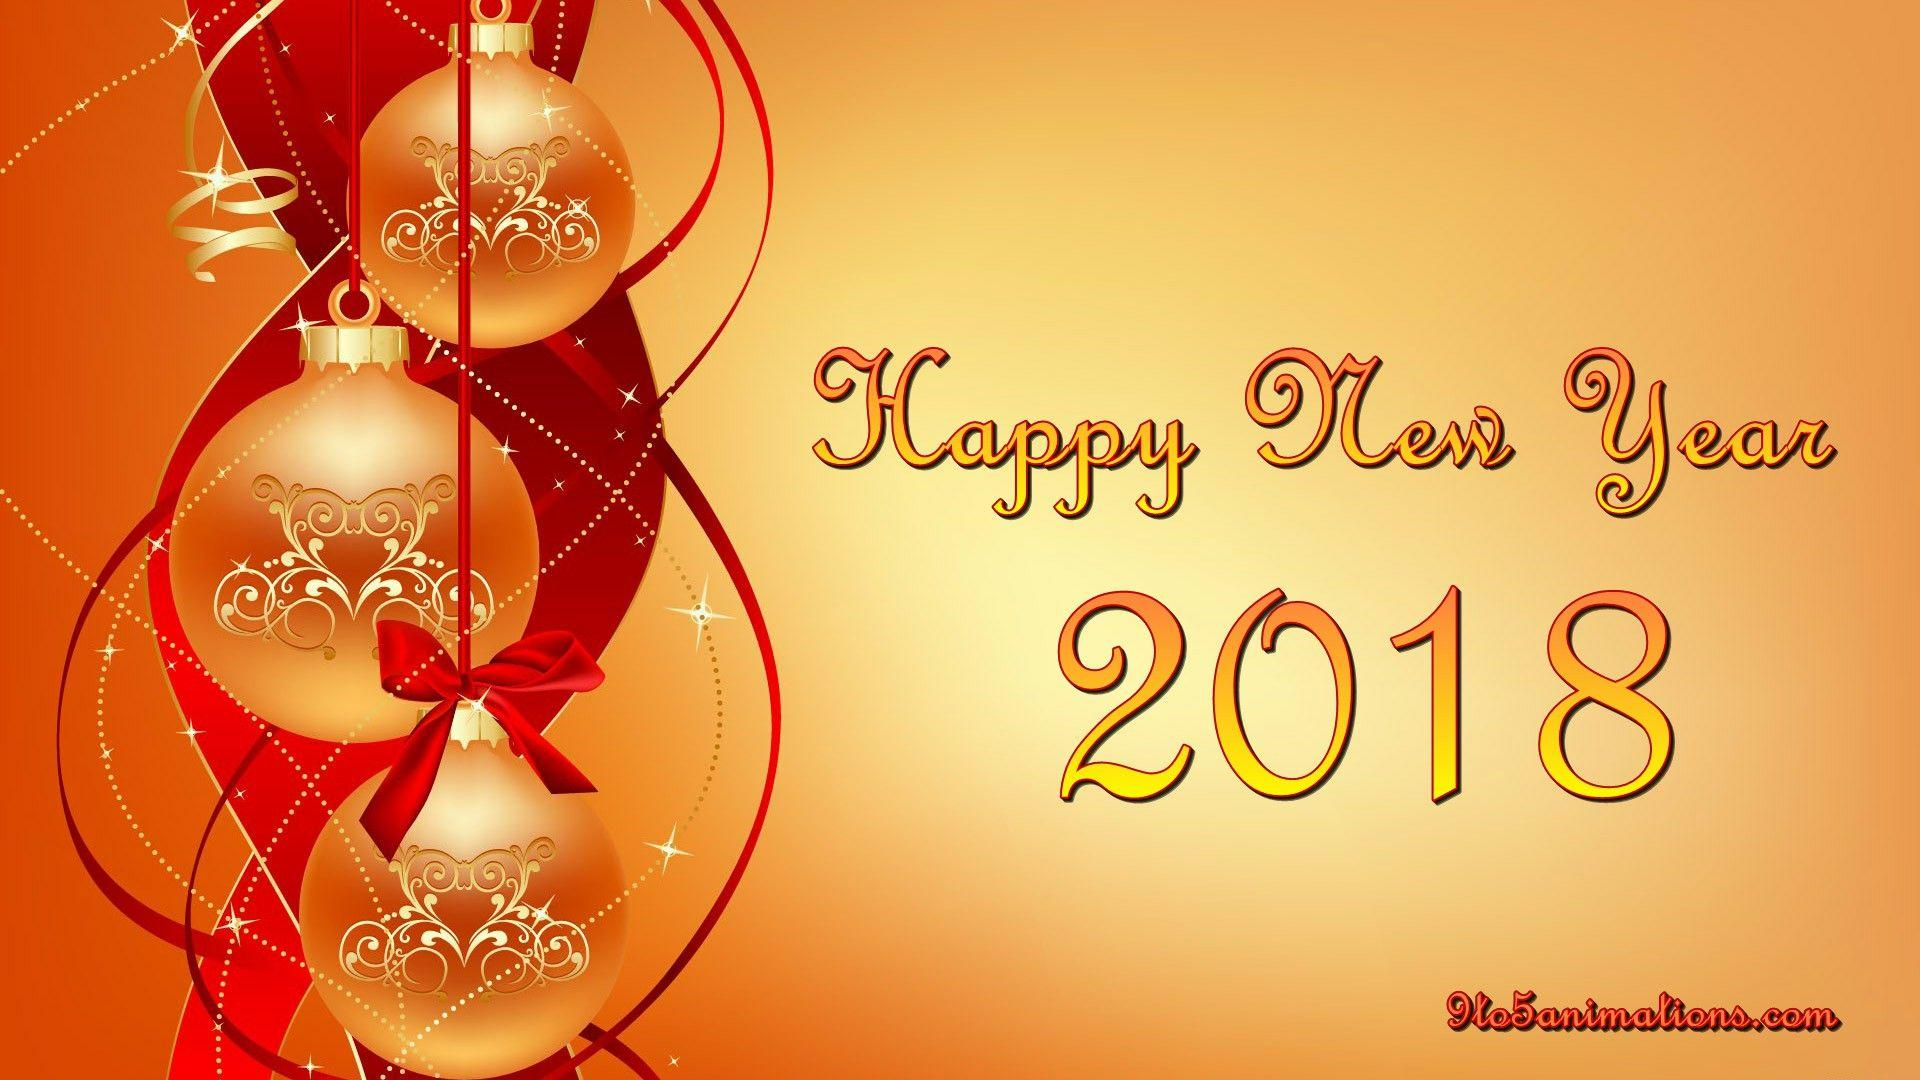 new year red theme wallpapers hd 9to5animationscom